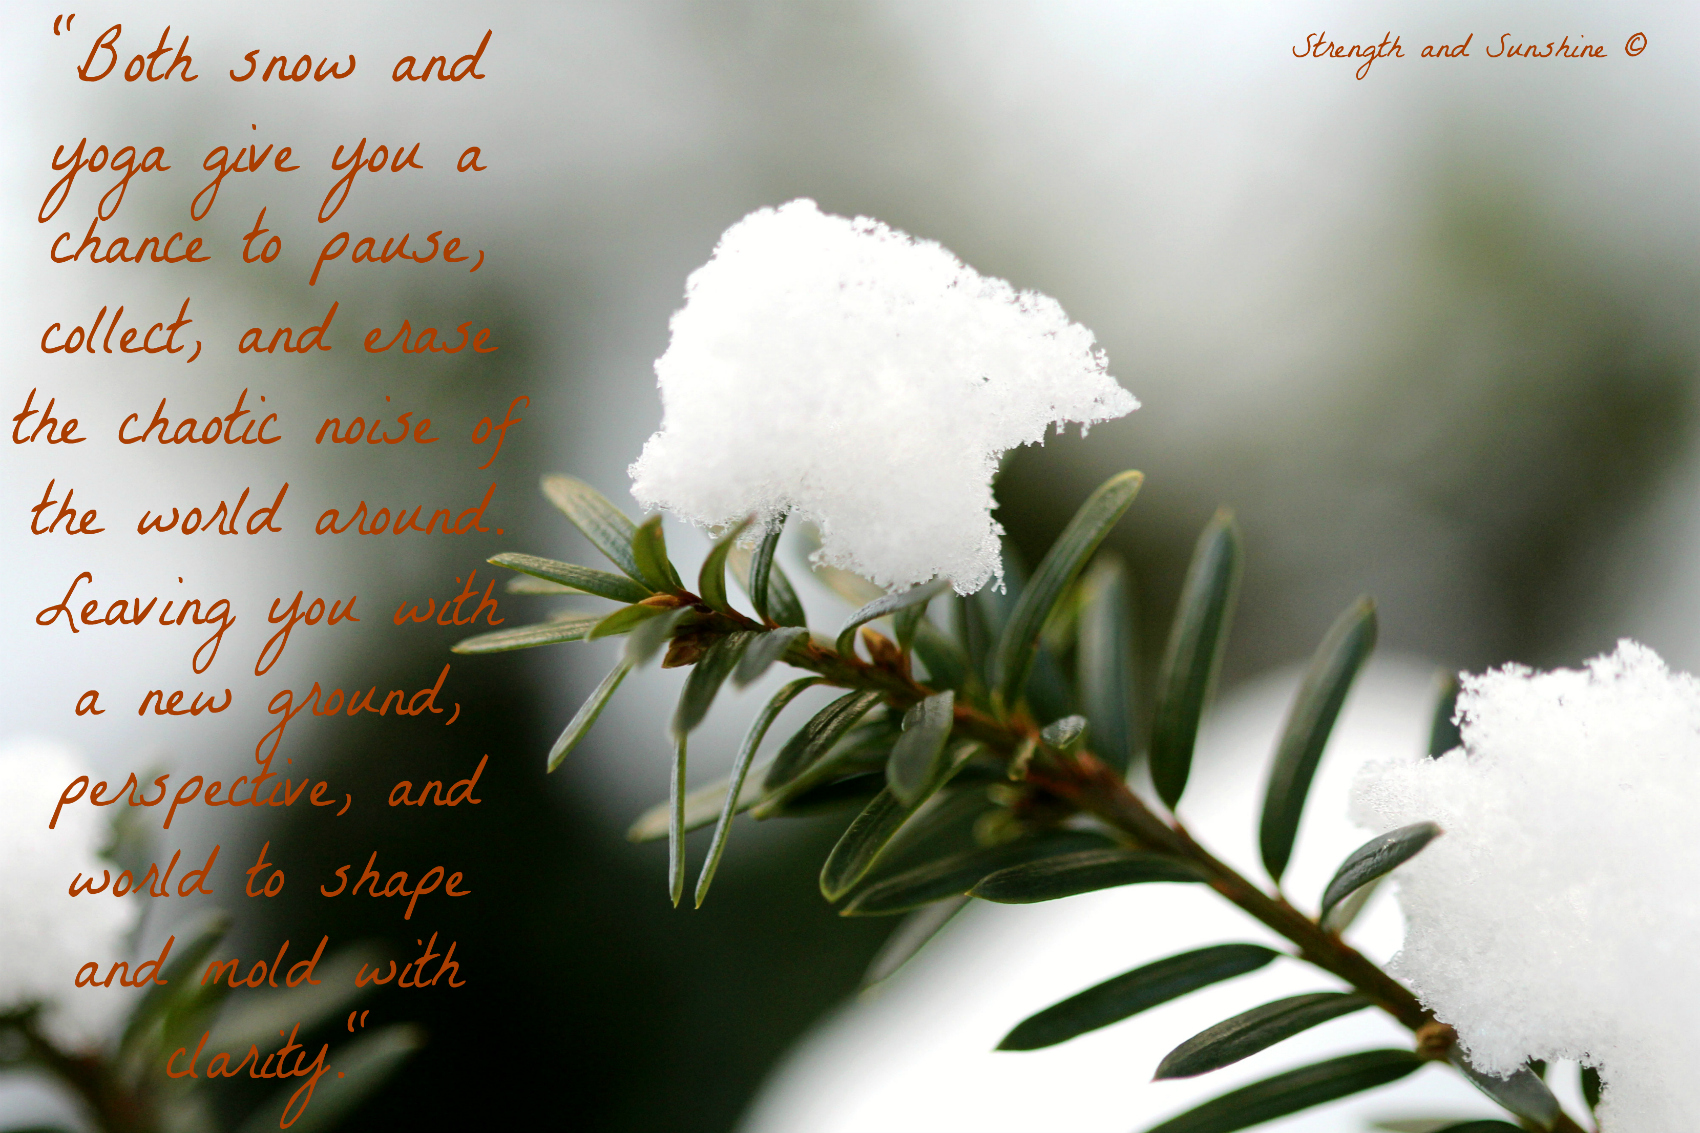 Snow, Yoga, And Clarity | Strength and Sunshine @RebeccaGF666 #snow #yoga